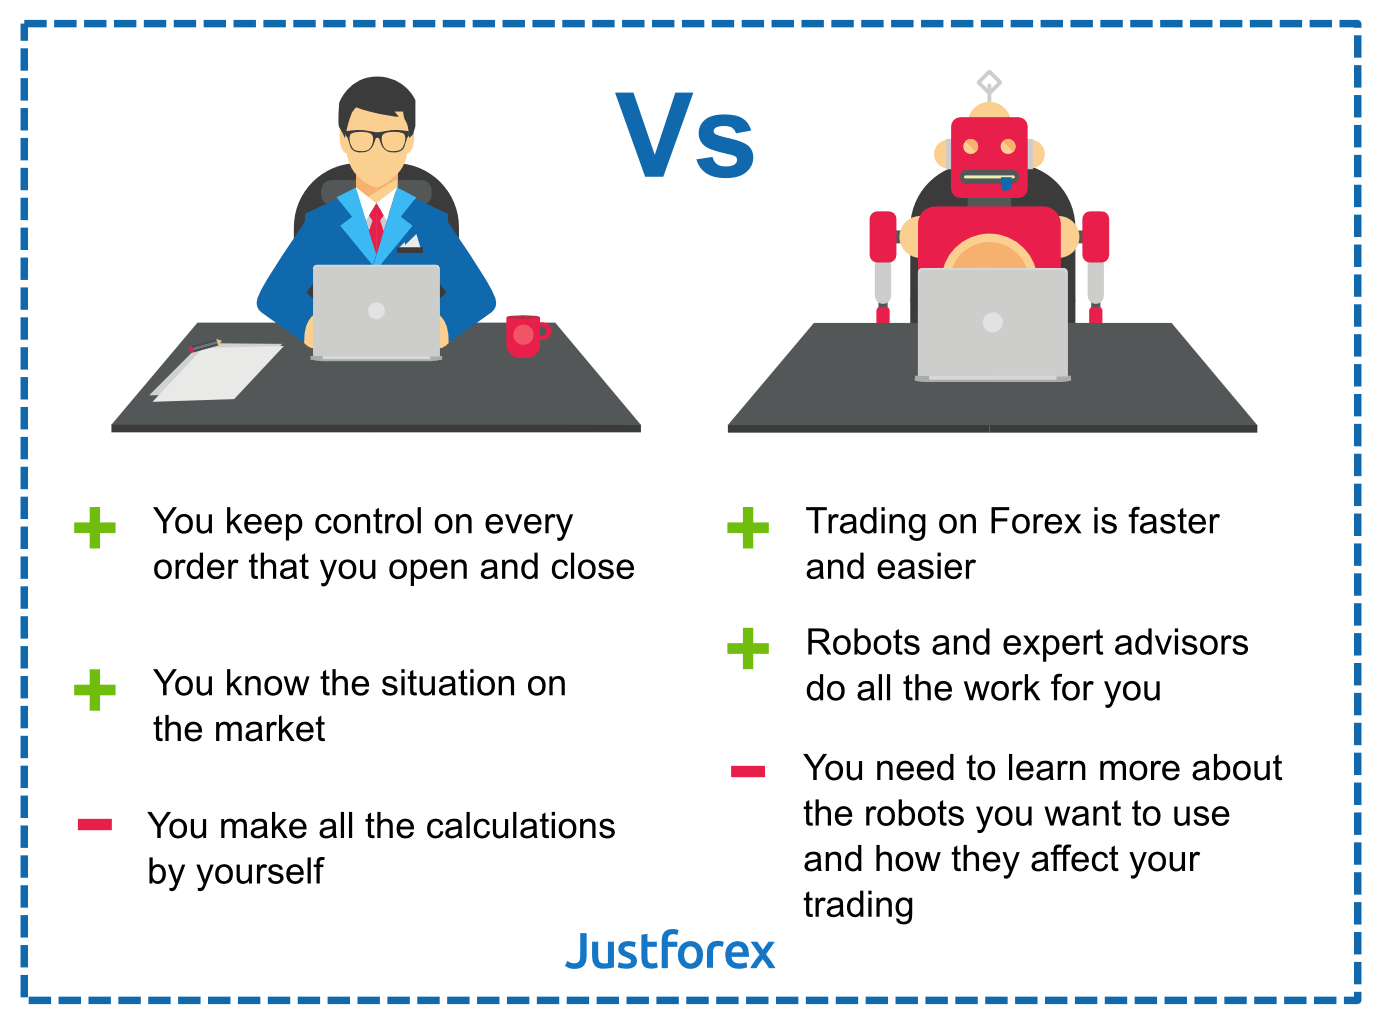 Manual vs automatic trading